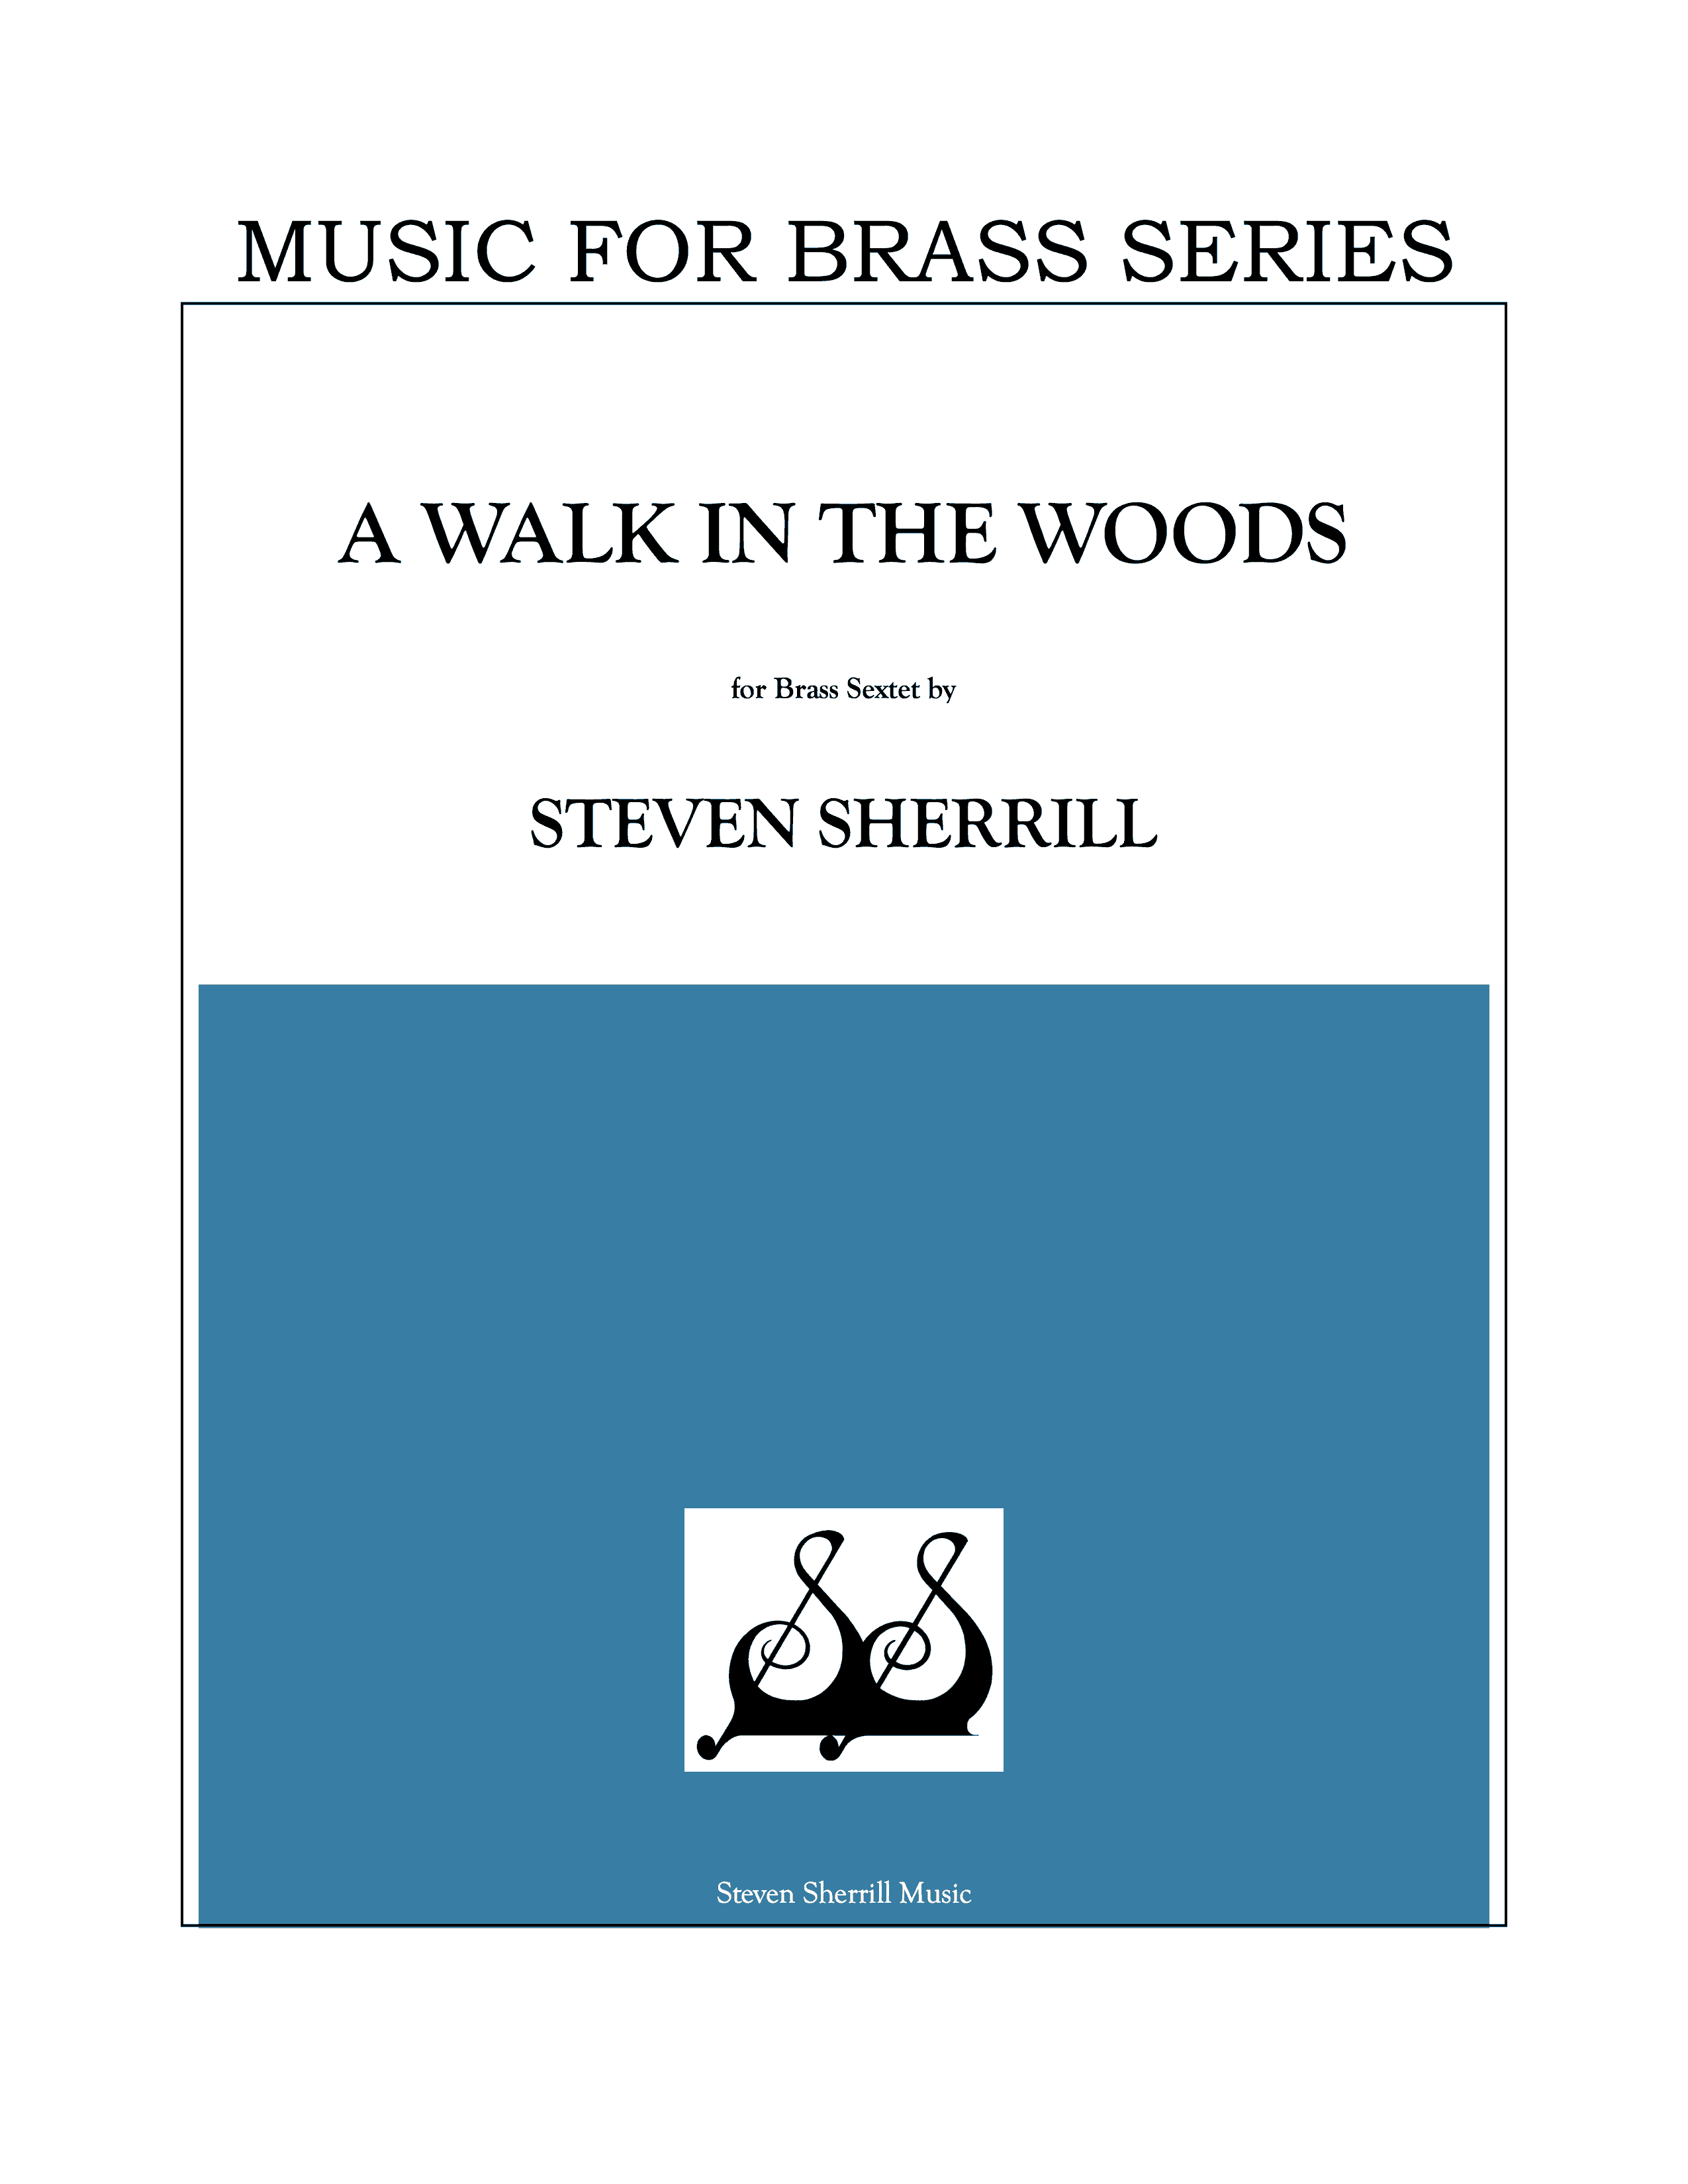 Walk in the Woods, A cover page